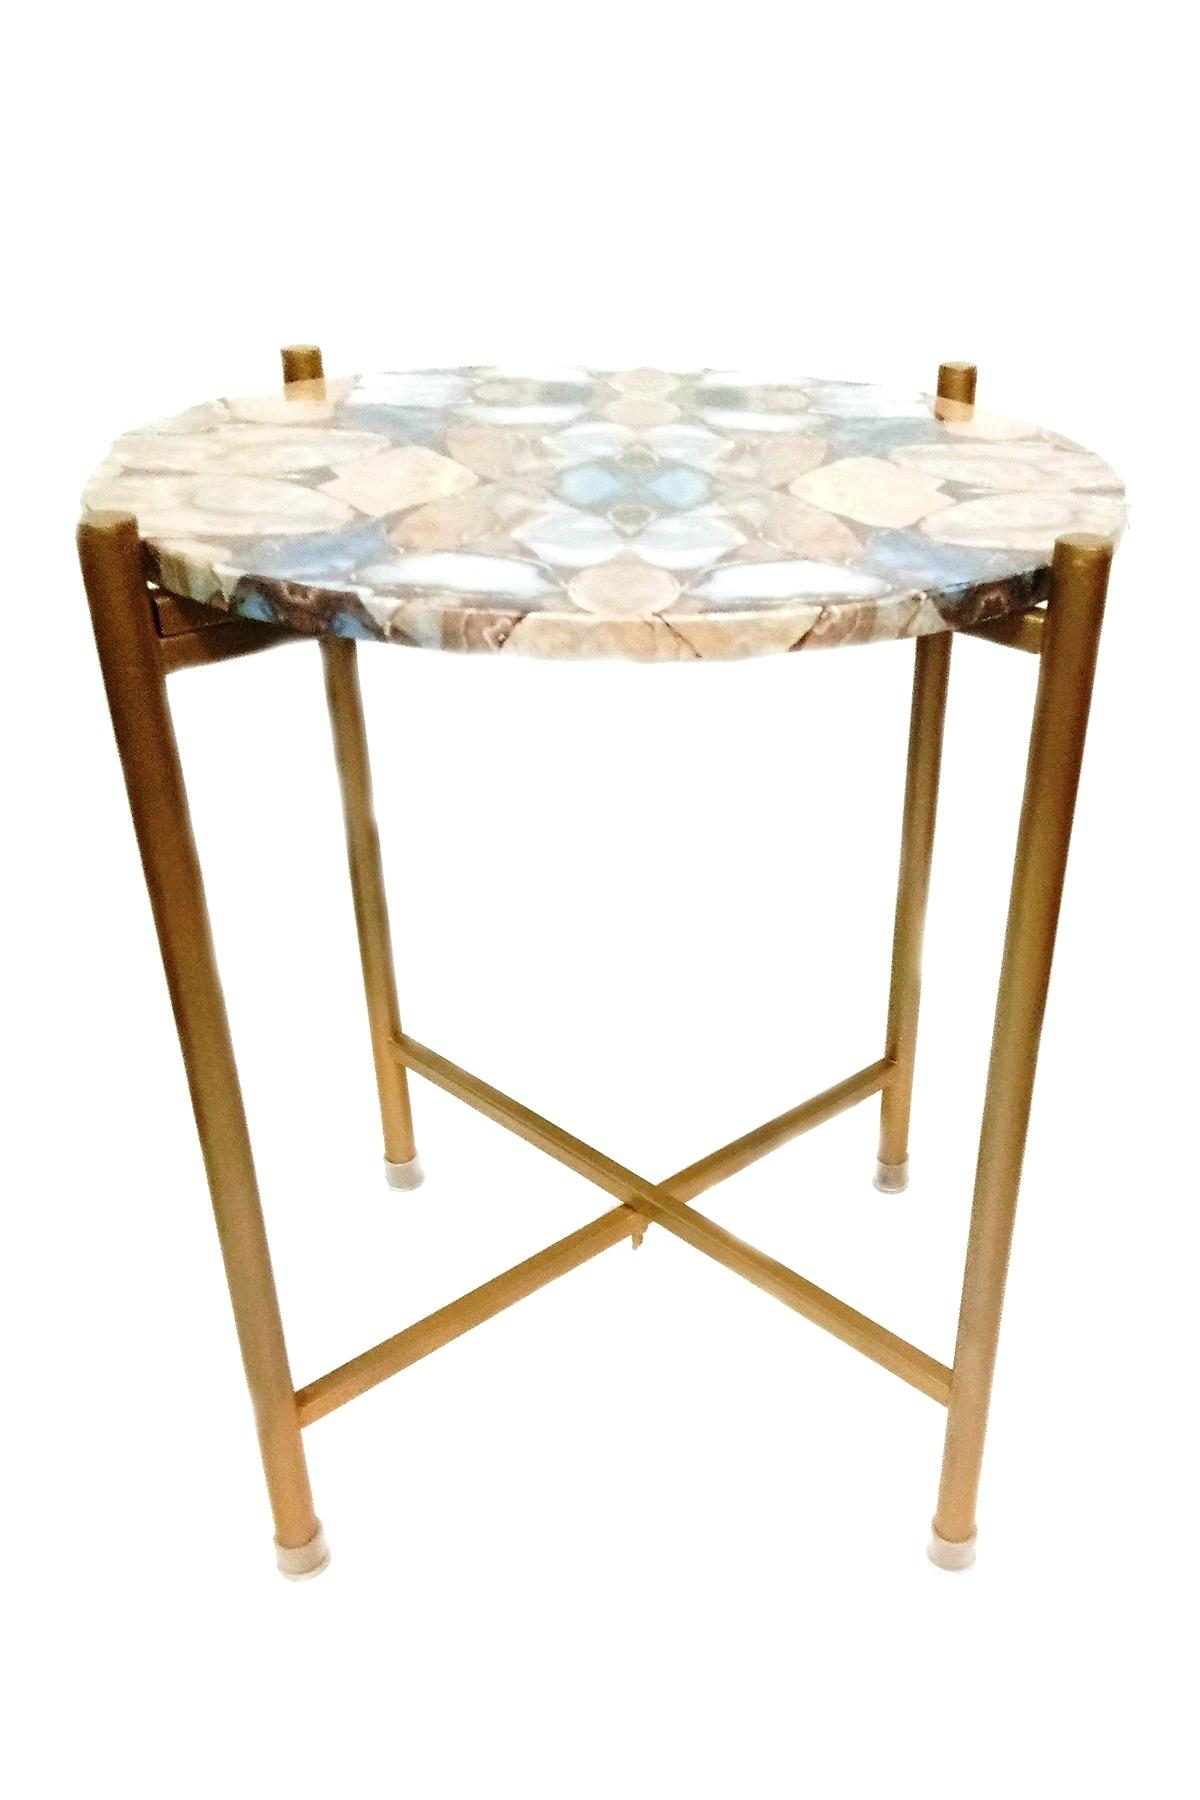 agate accent table glass burmatravel decor top side purple nate berkus real tiffany lamps white porcelain lamp oak sound percussion throne pier one imports coffee antique living